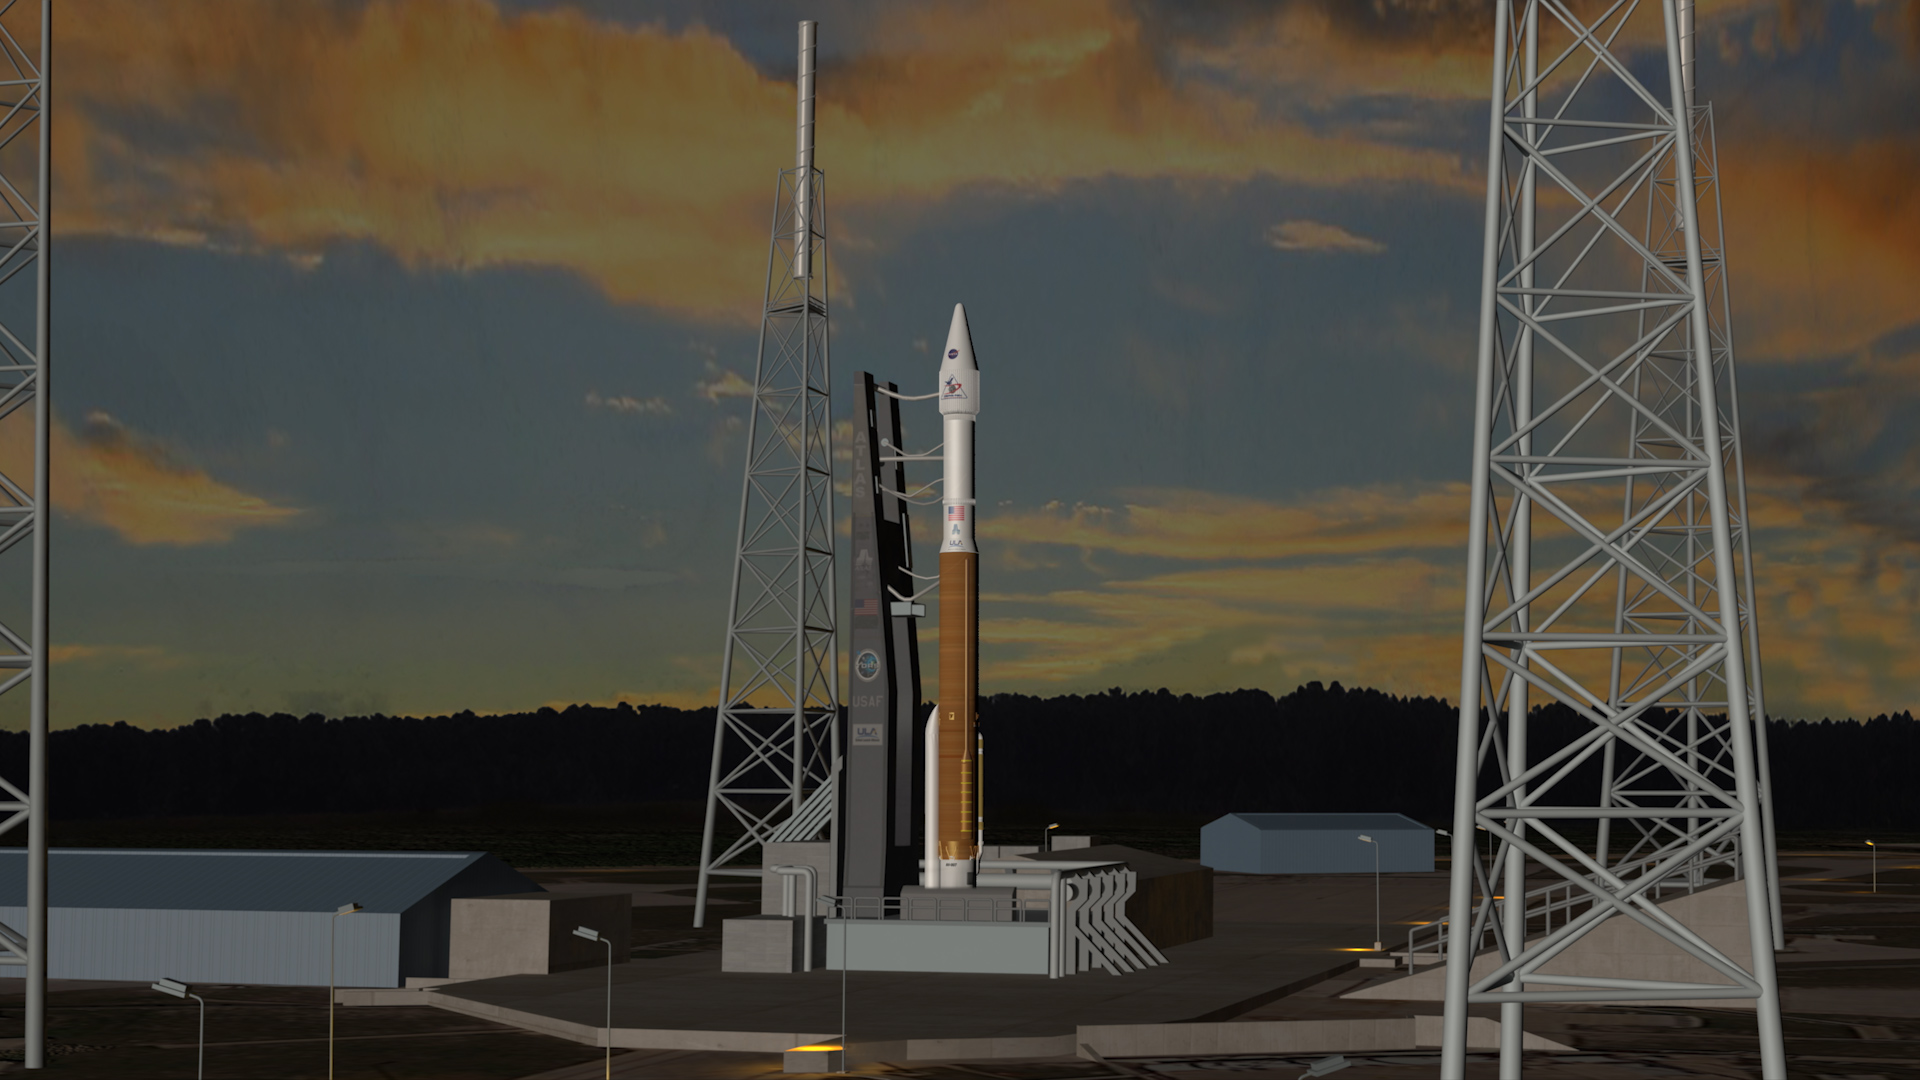 Animation of the launch of an Atlas V rocket